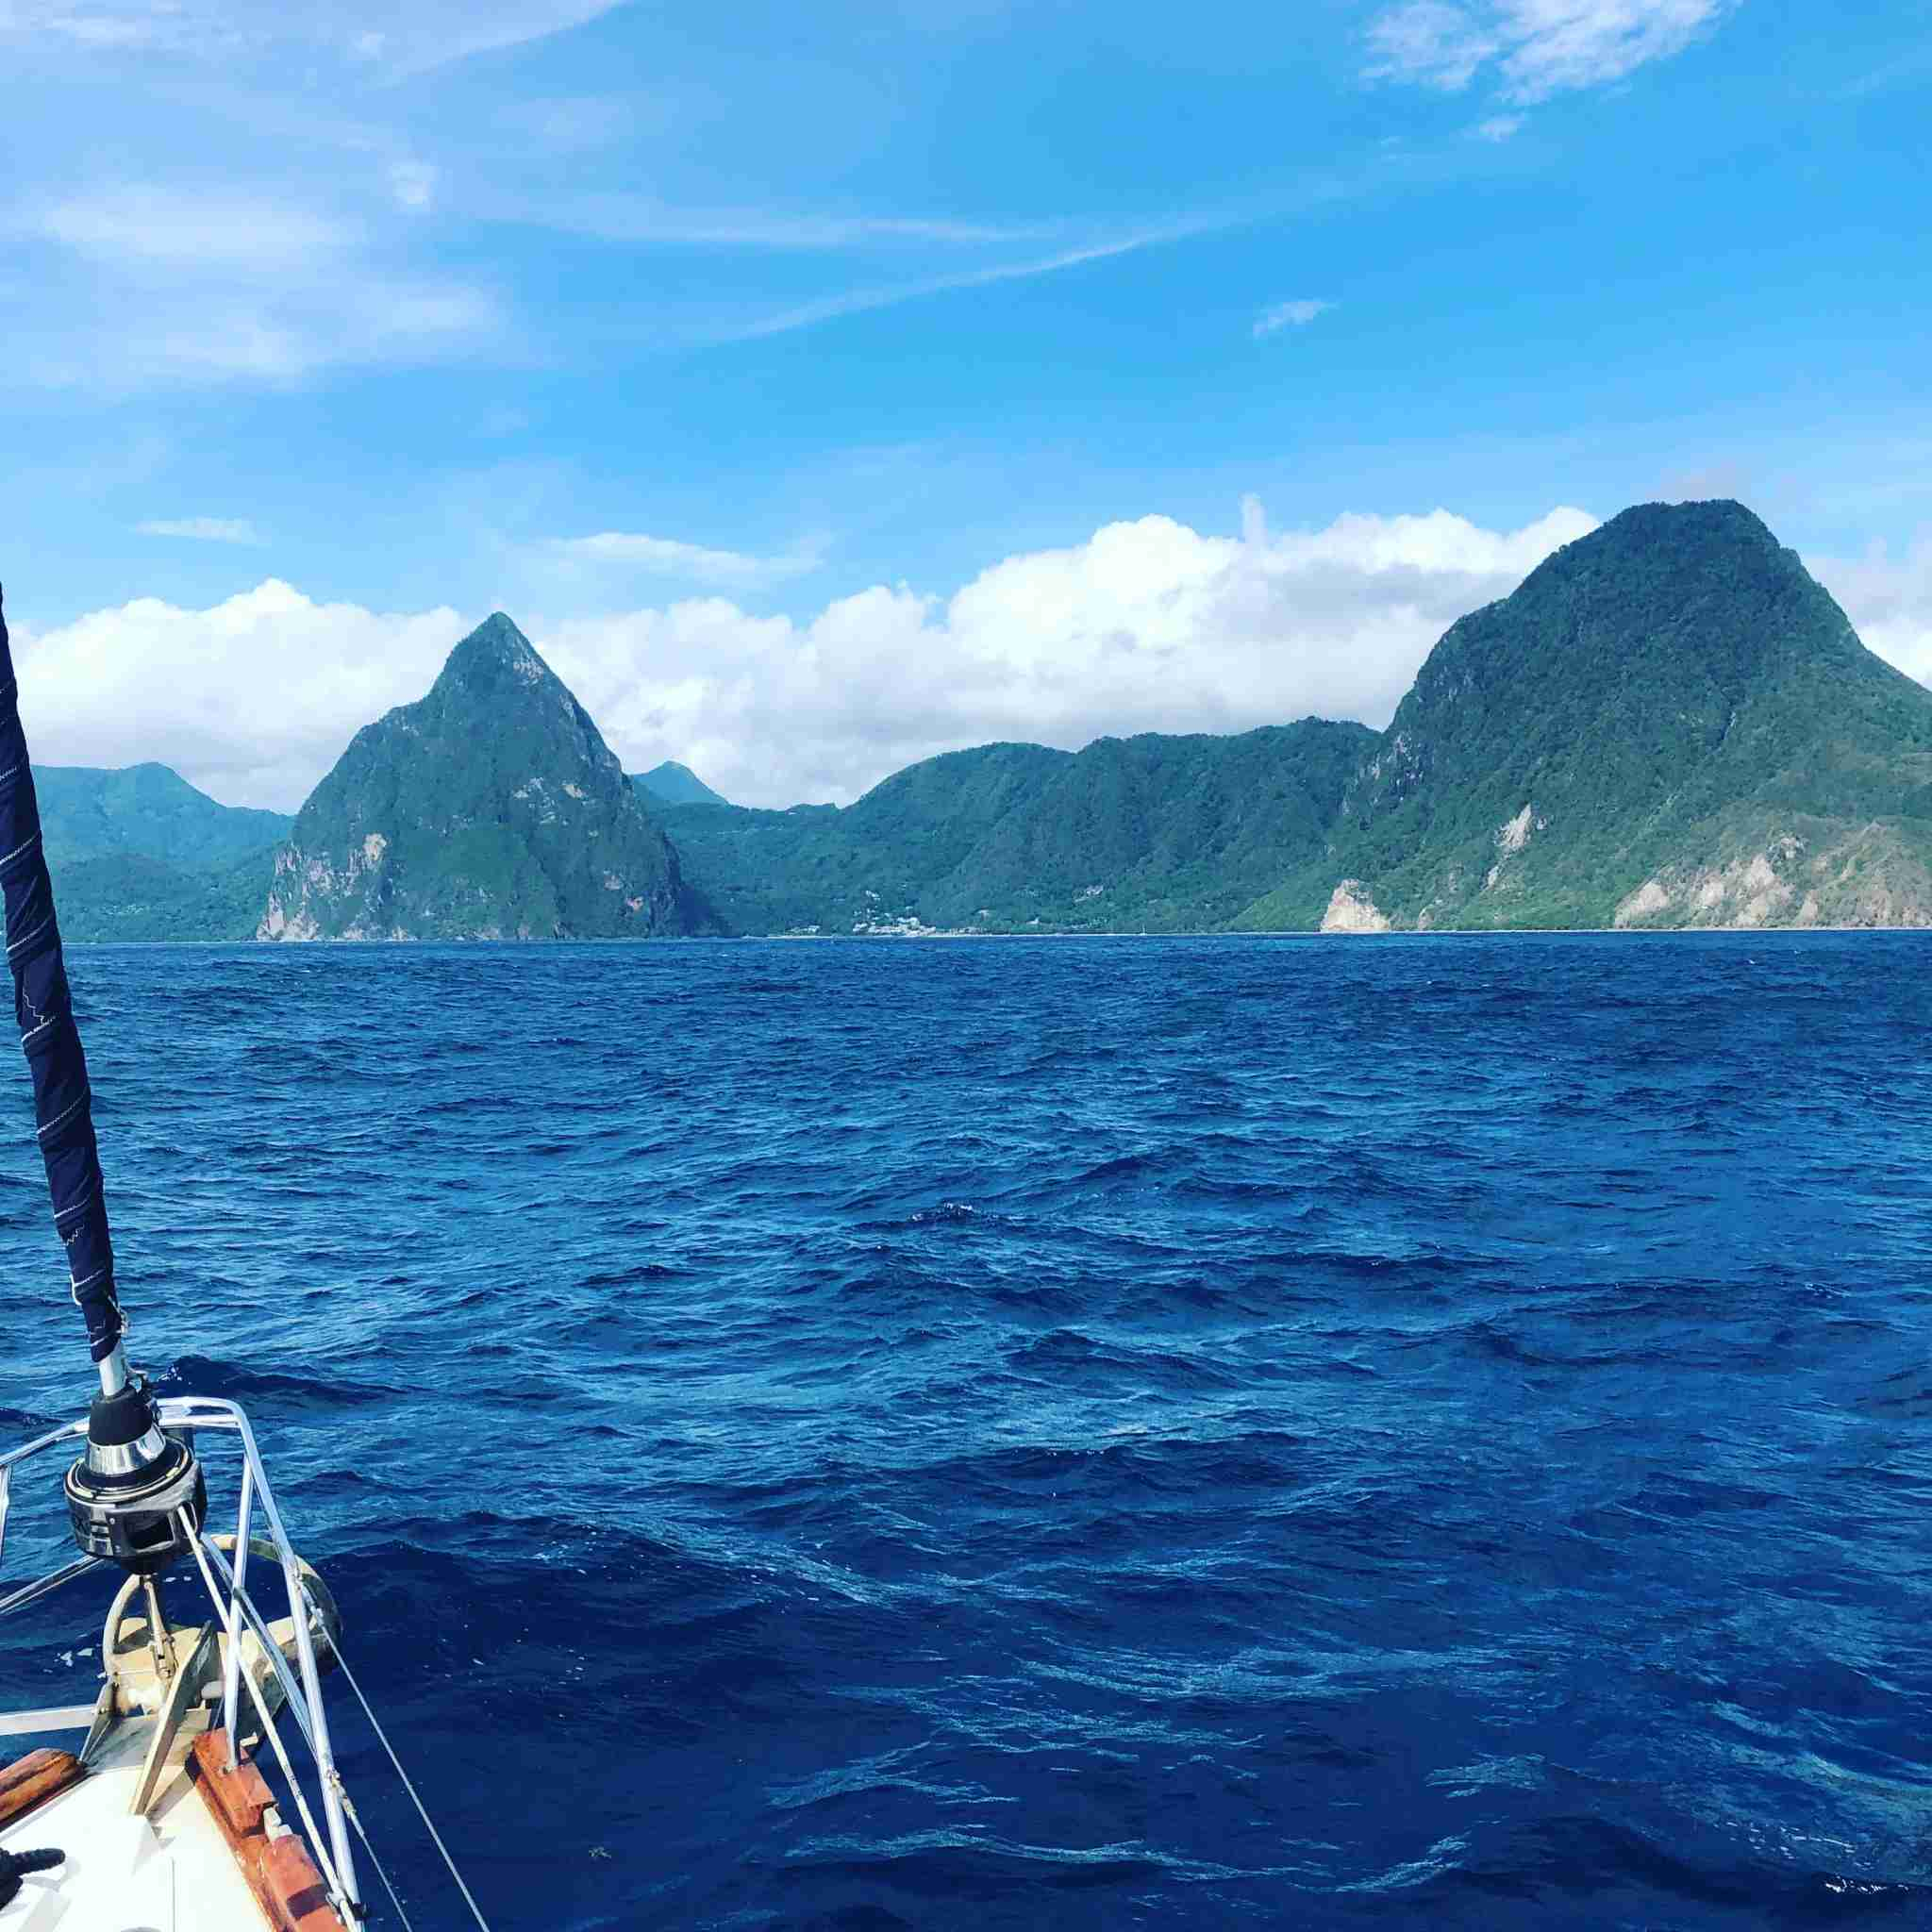 The view of the Pitons in St Lucia from a yacht